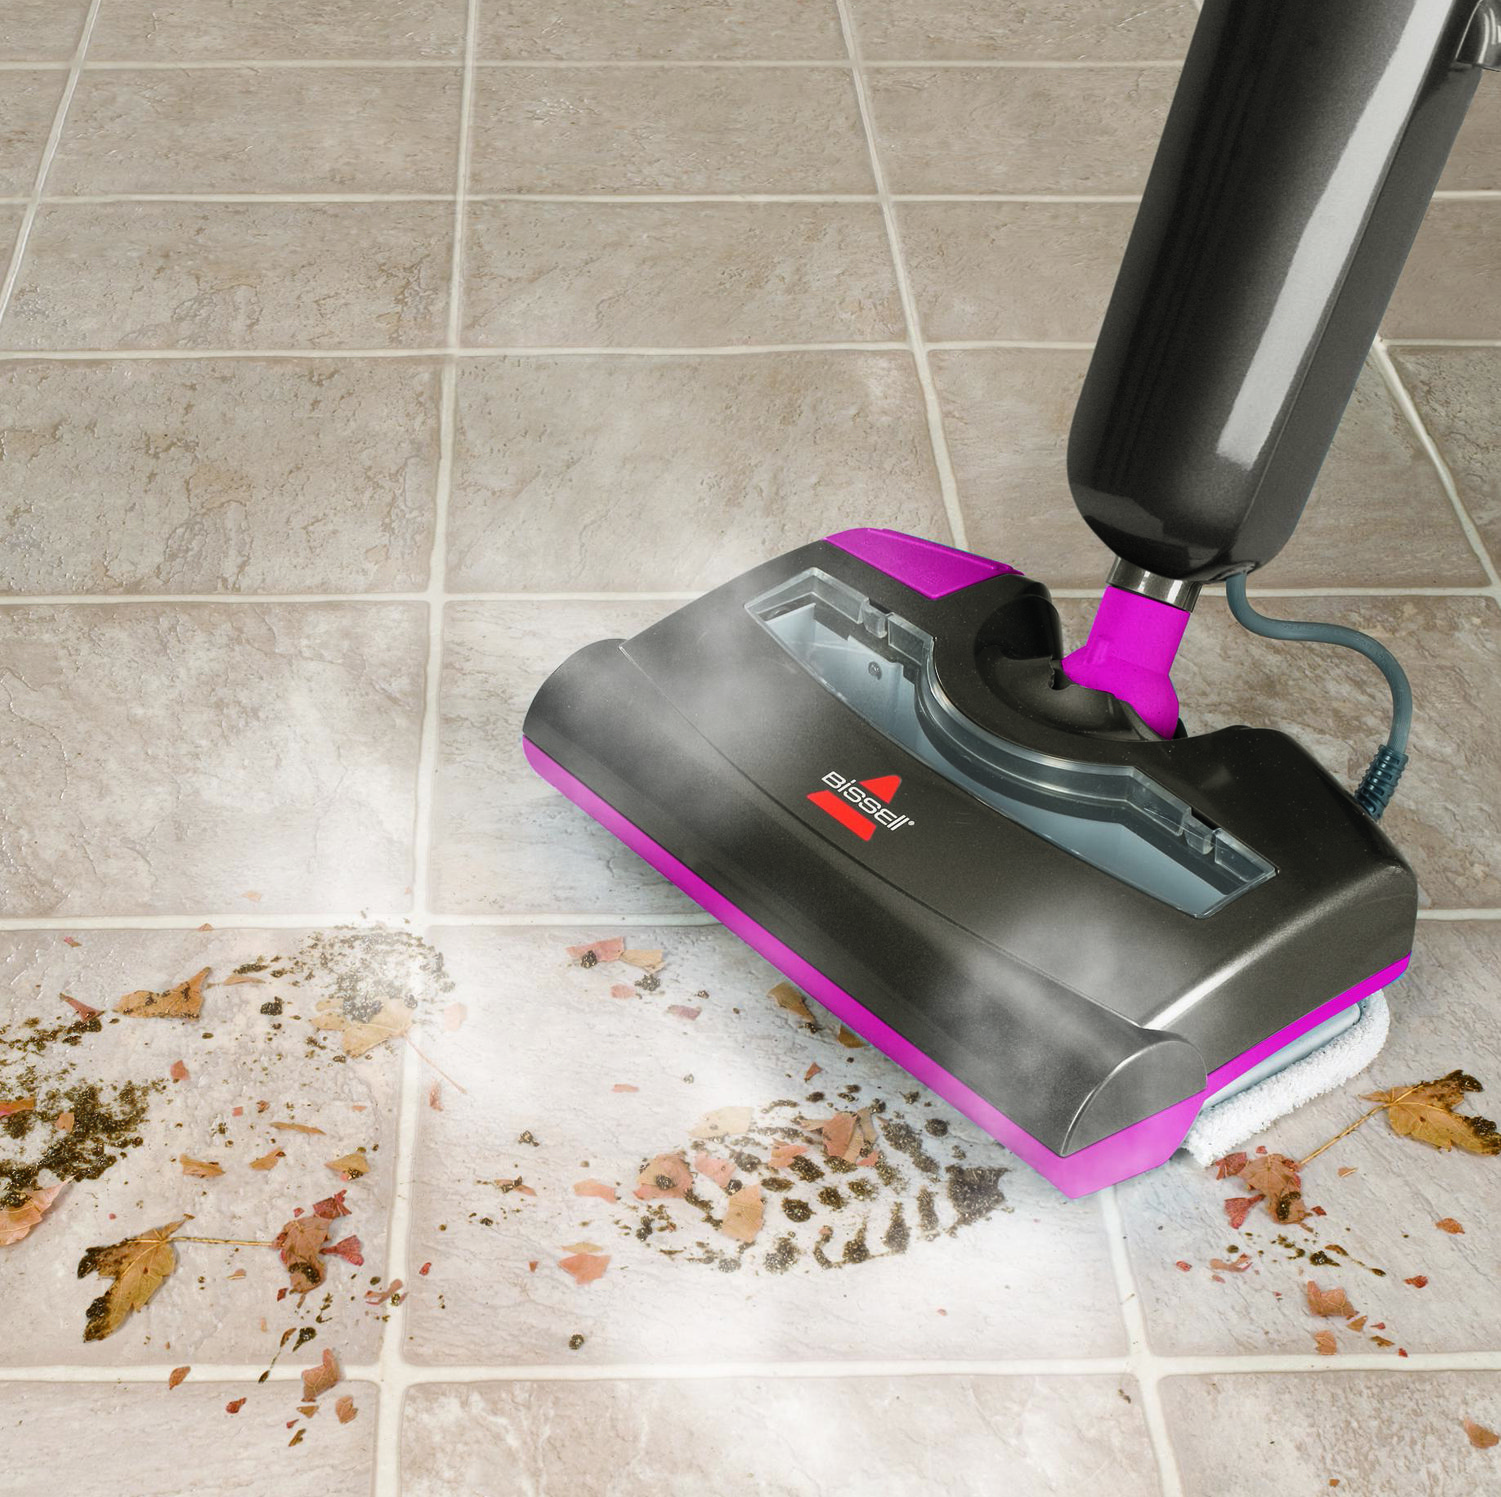 floor and cleaning home solution a troubleshooting proheat for floors stunning with vidalondon incredible ideas vacuums inspiring cleaner carpet steam bissell